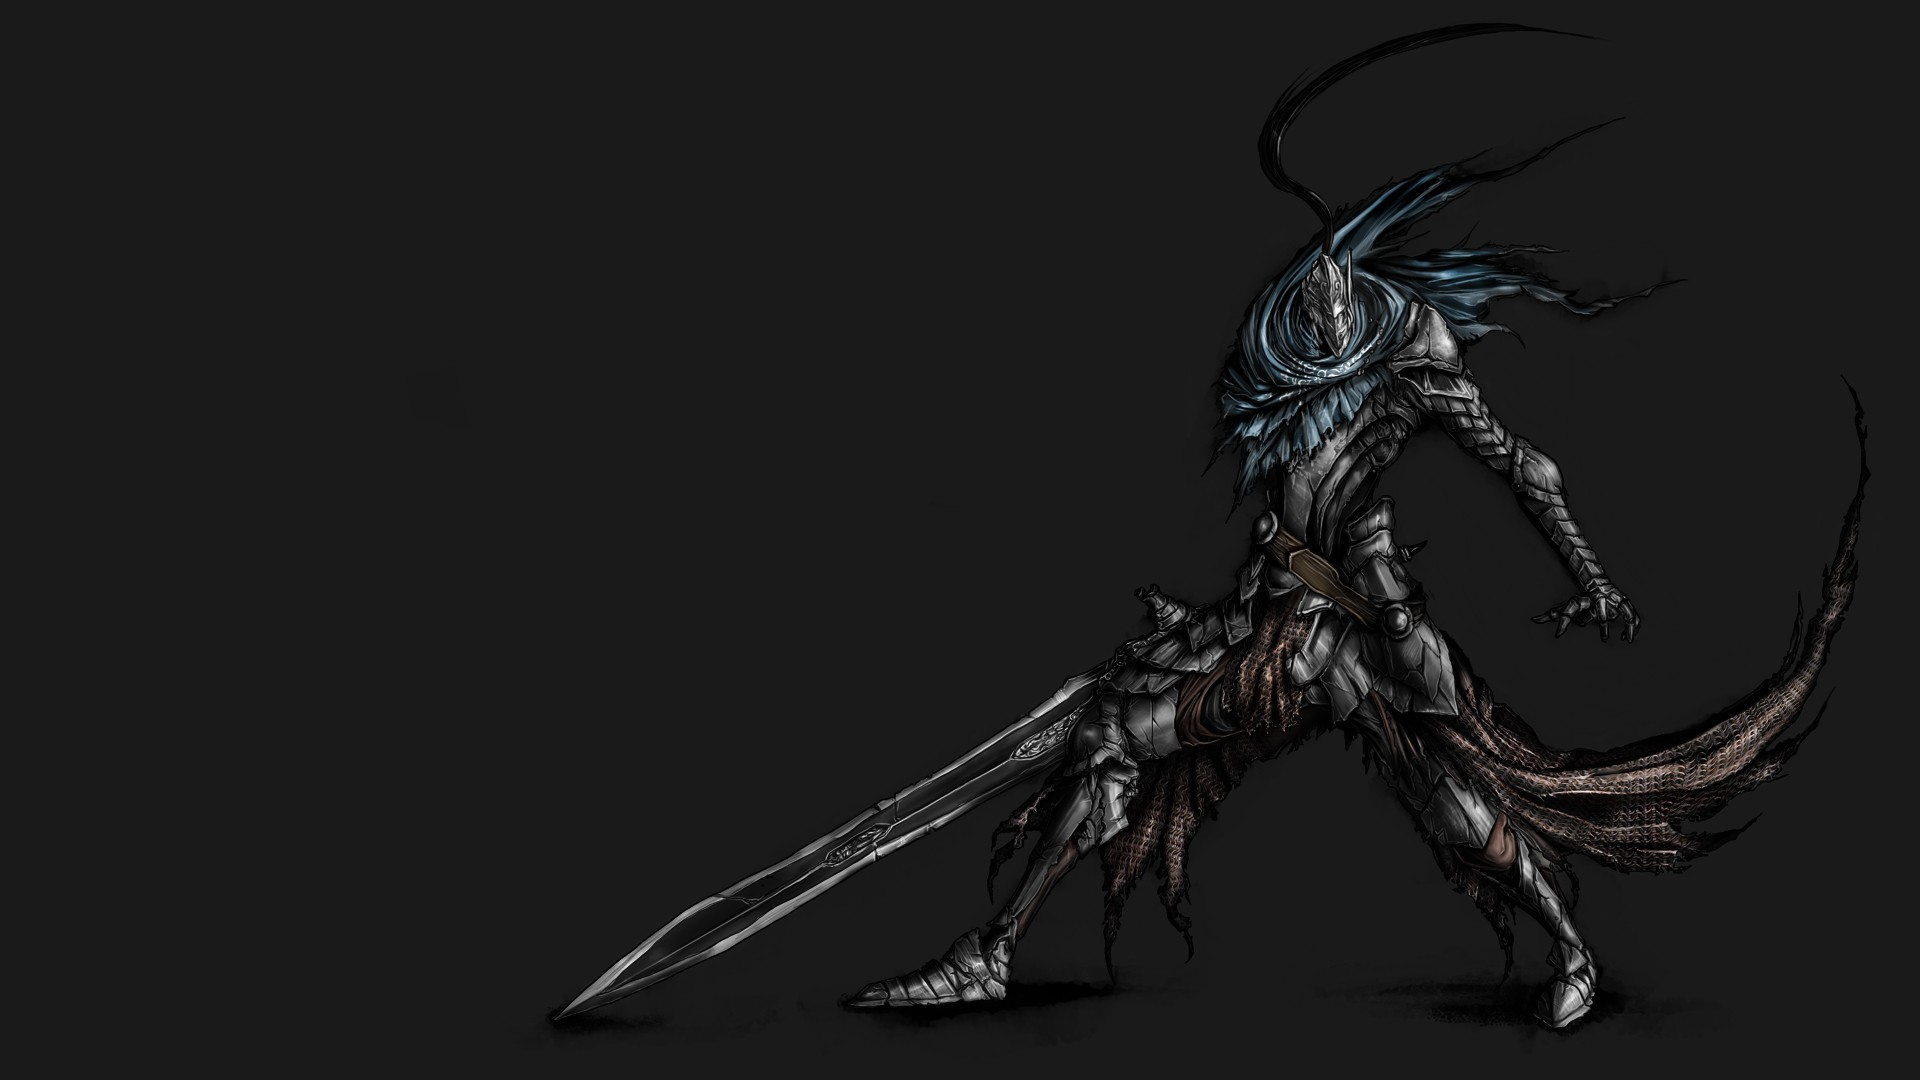 1920x1080 Animation Artorias The Abysswalker Dark Souls Helmets Masks Simple  Background Unrealistic Warriors Weapons ...